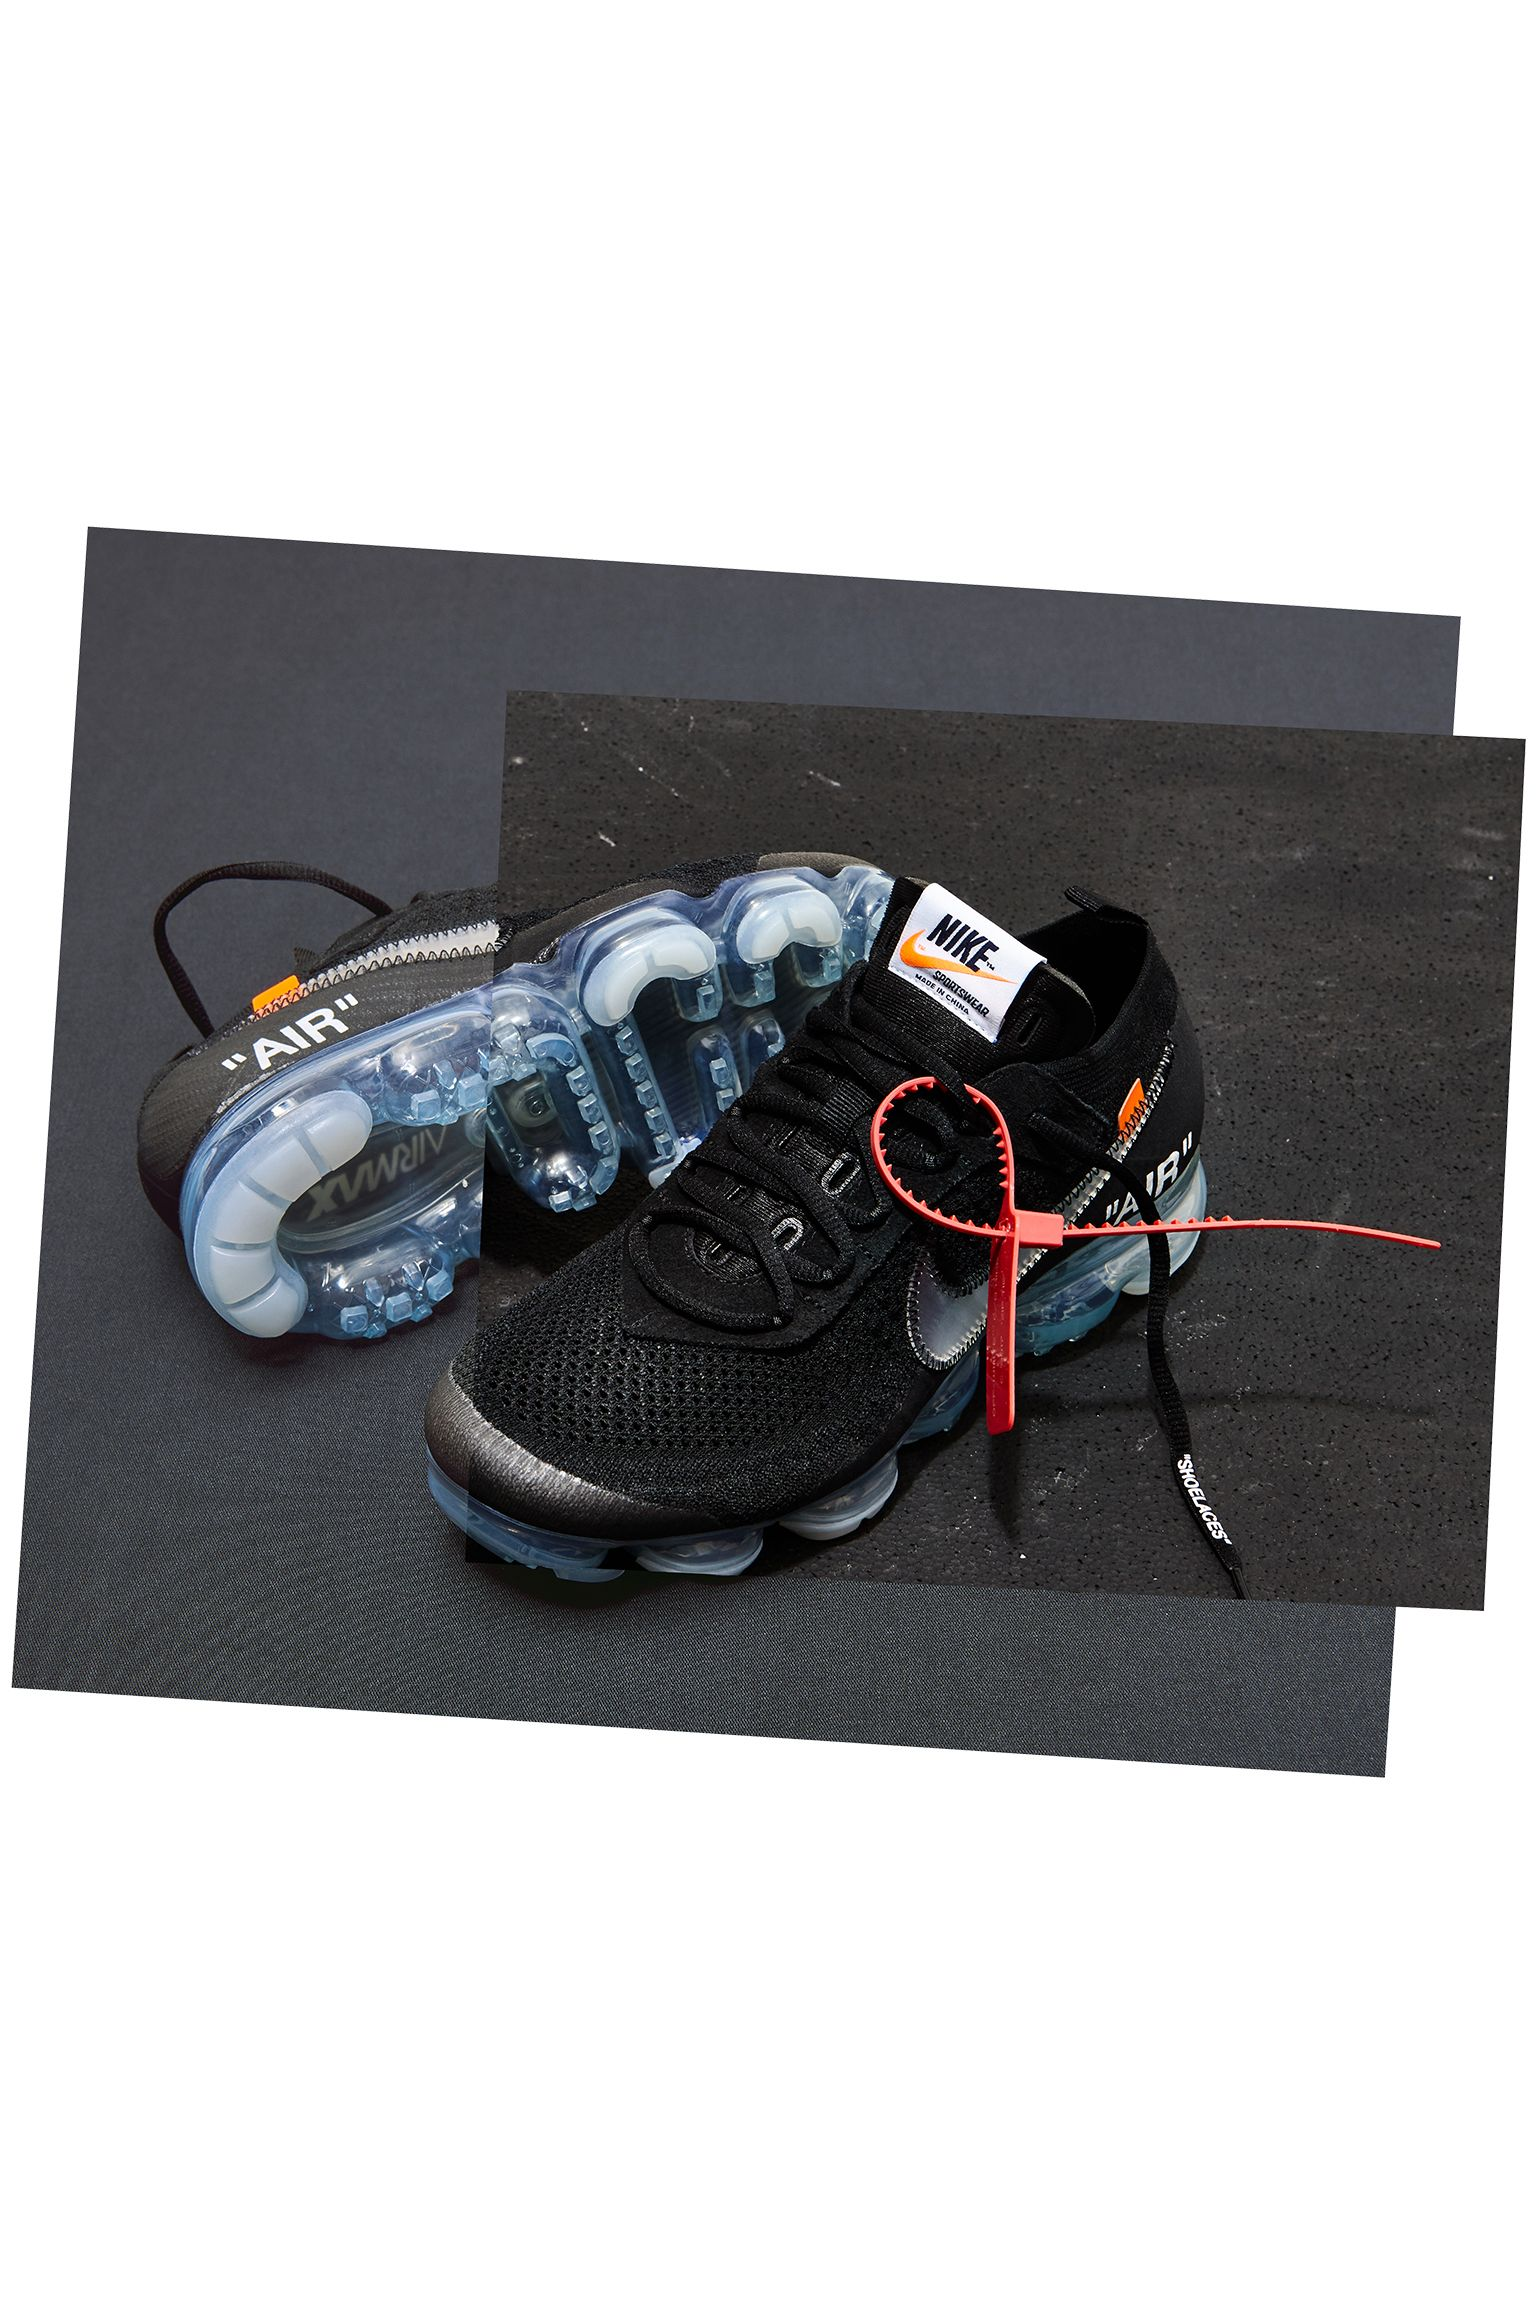 981b57125c Nike The Ten Air Vapormax Off-White 'Black' Release Date. Nike+ SNKRS